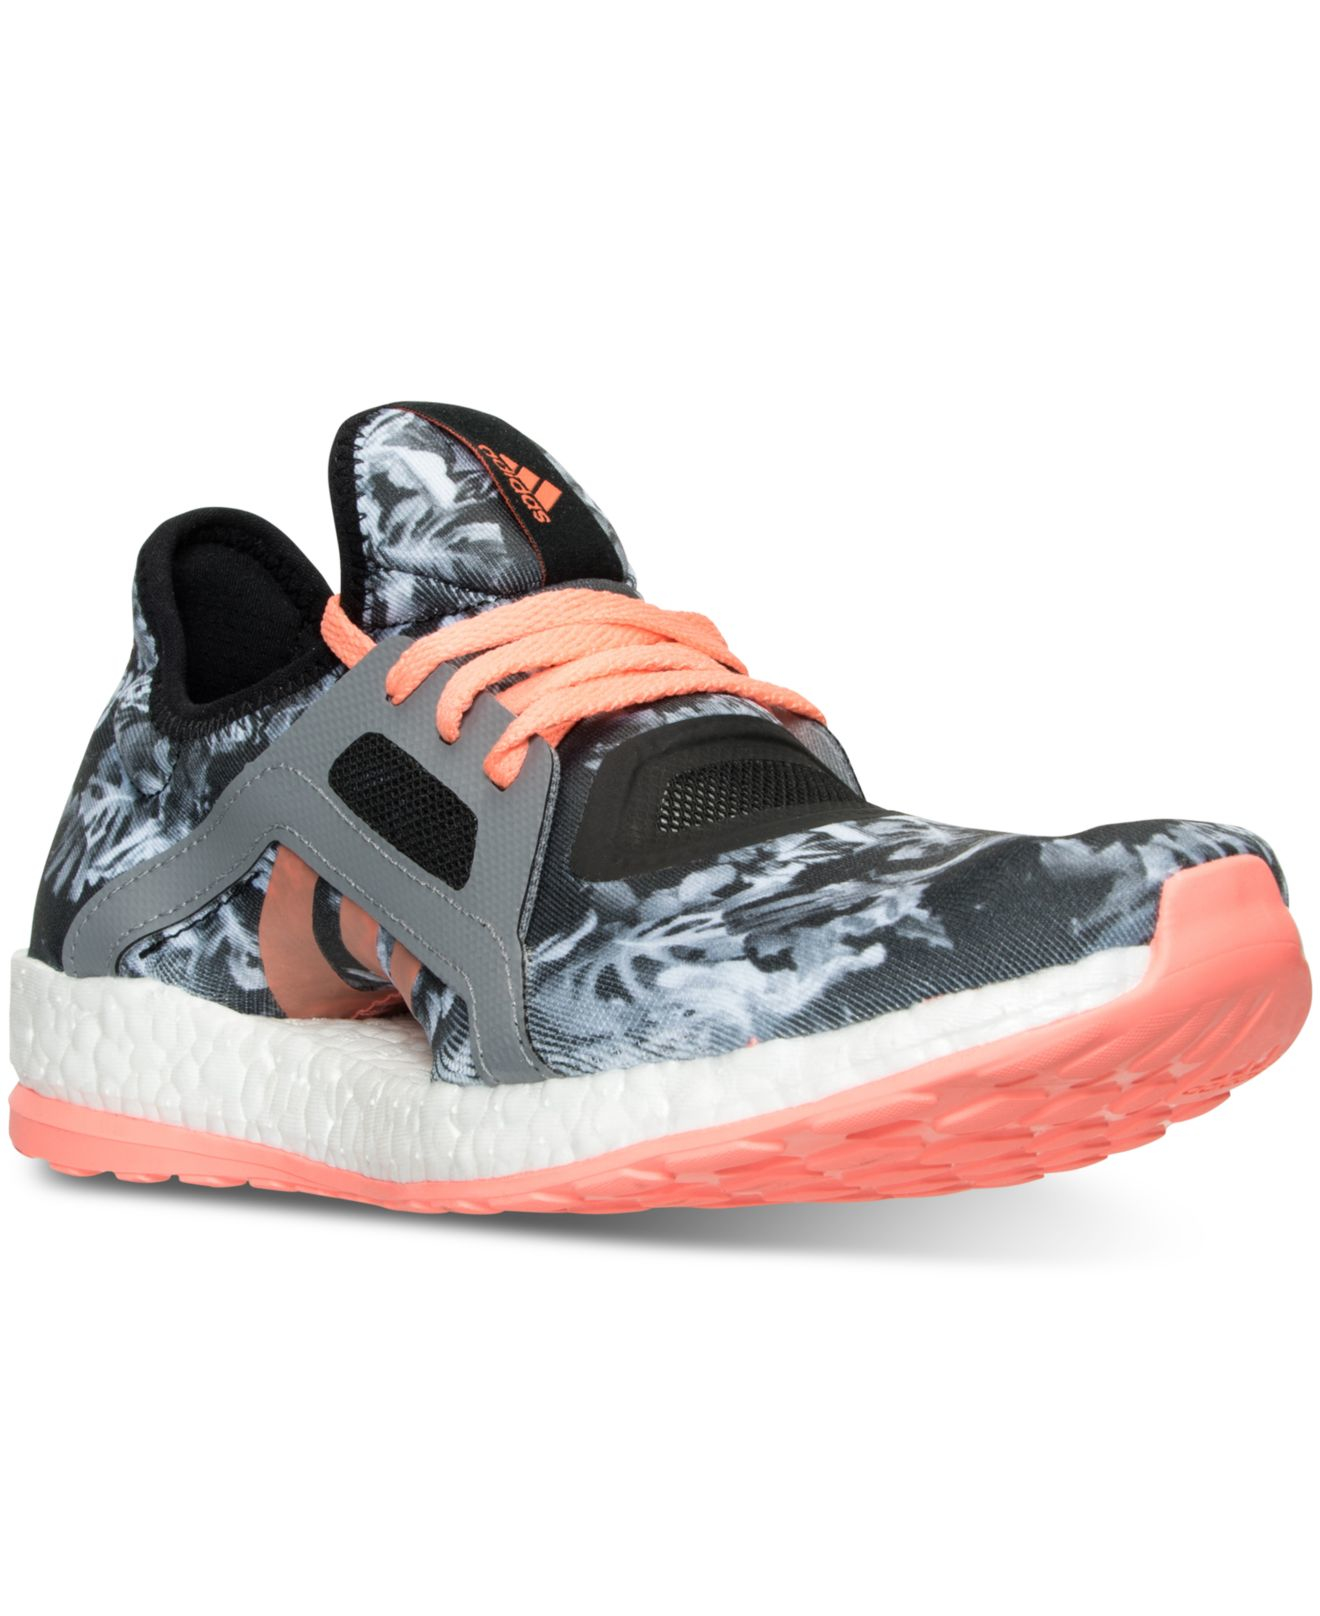 0a9b5128f Lyst - adidas Originals Women s Pure Boost X Running Sneakers From ...